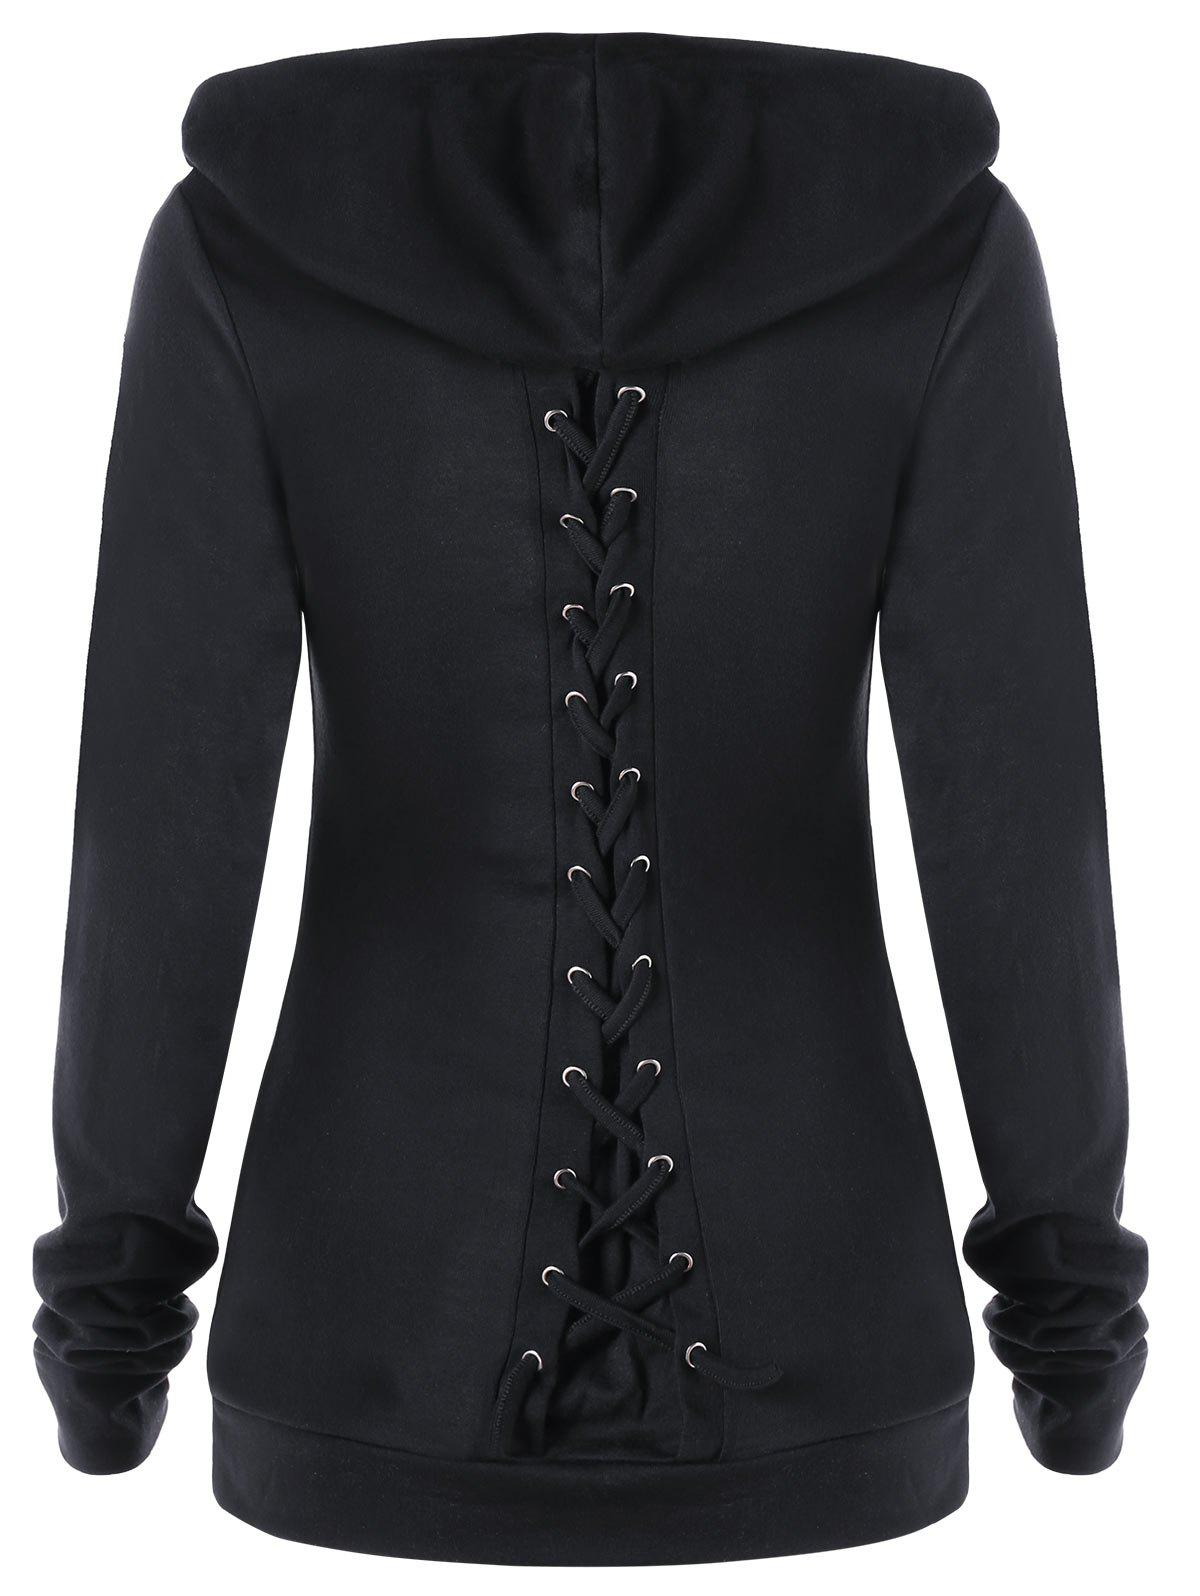 Lace up hoodies